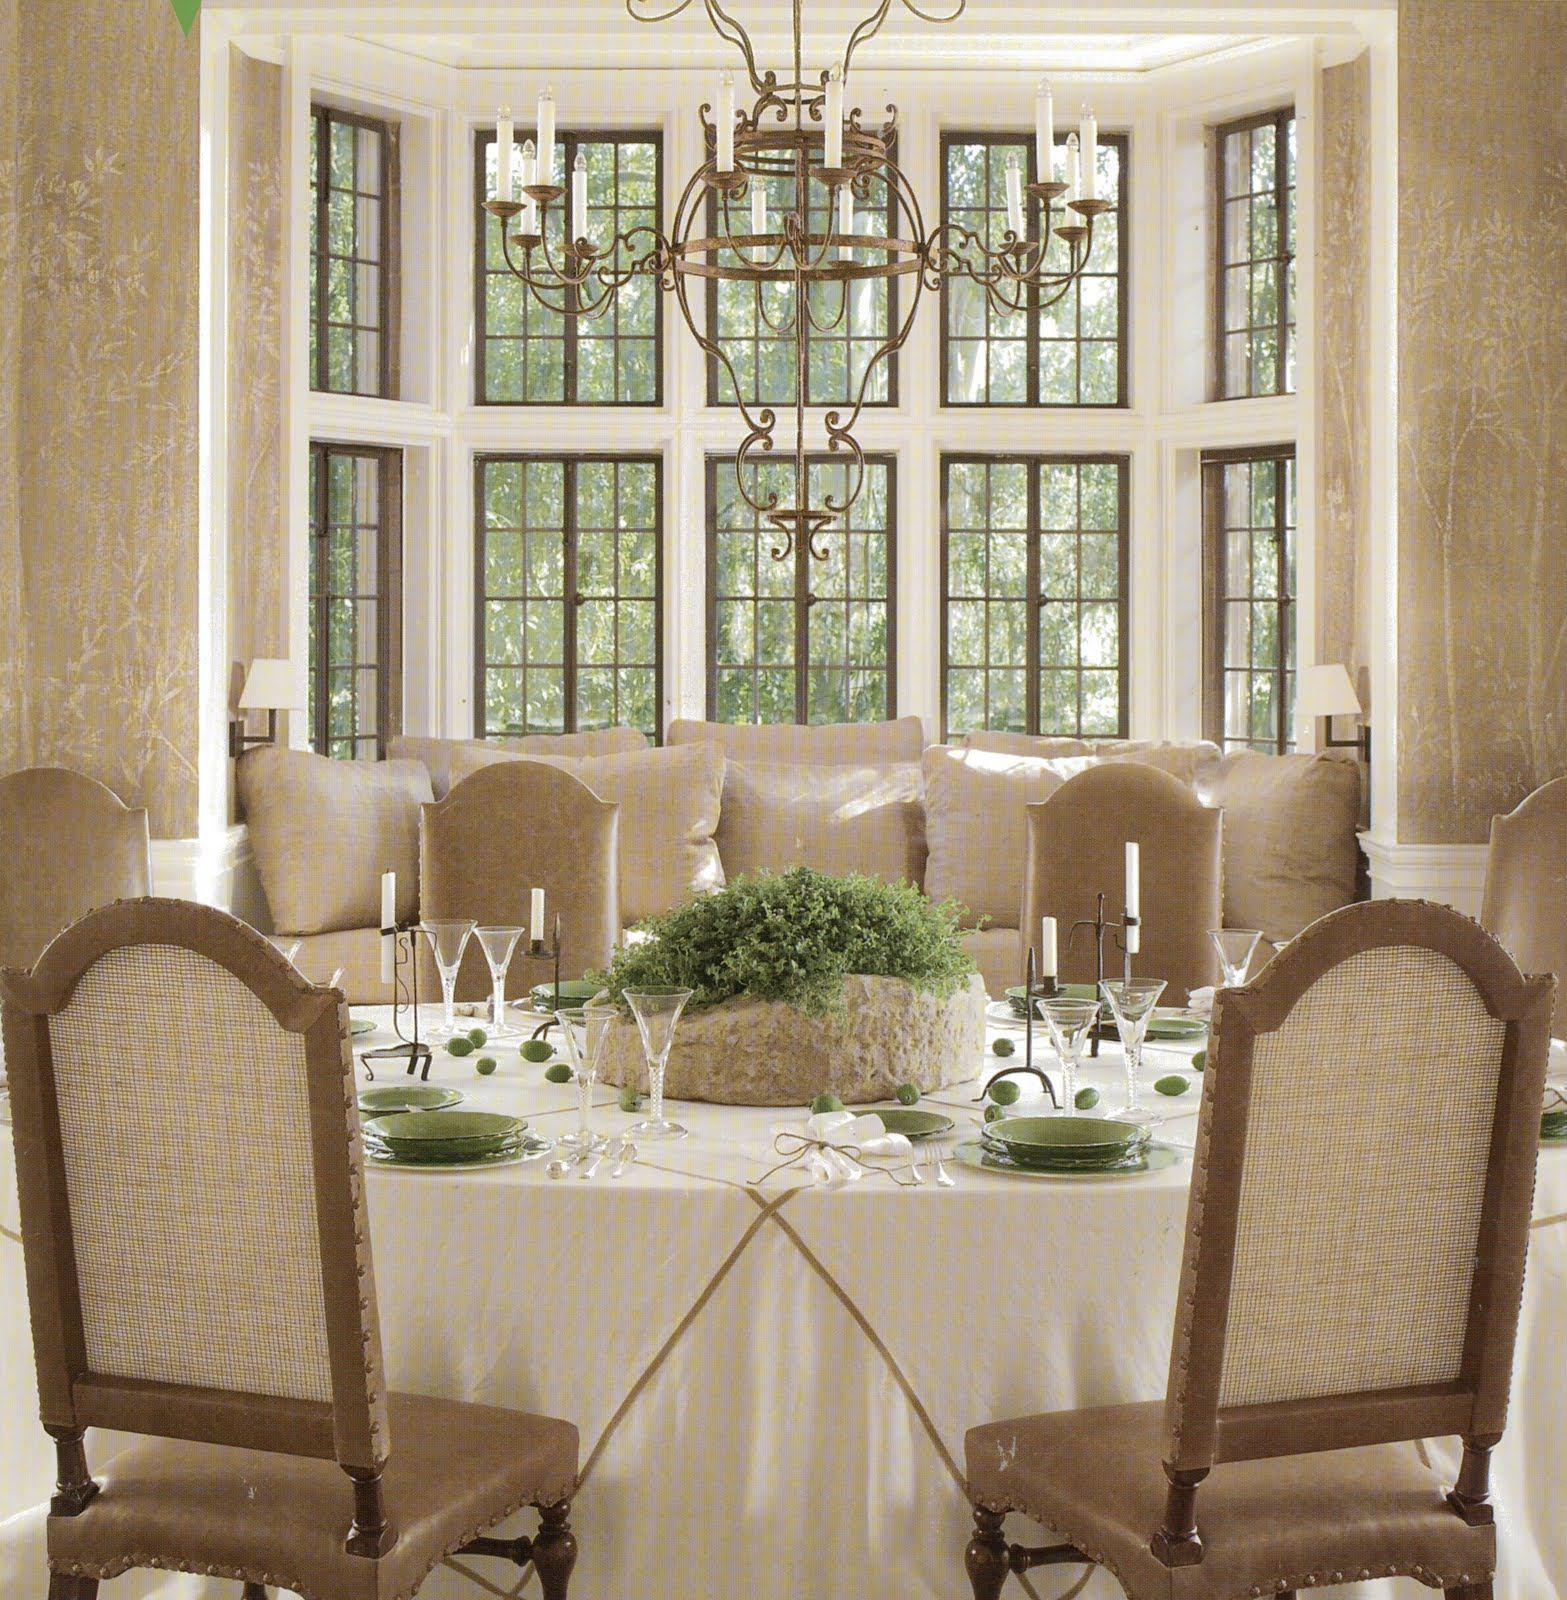 P s i love this ideas for dining room for Dining room area ideas